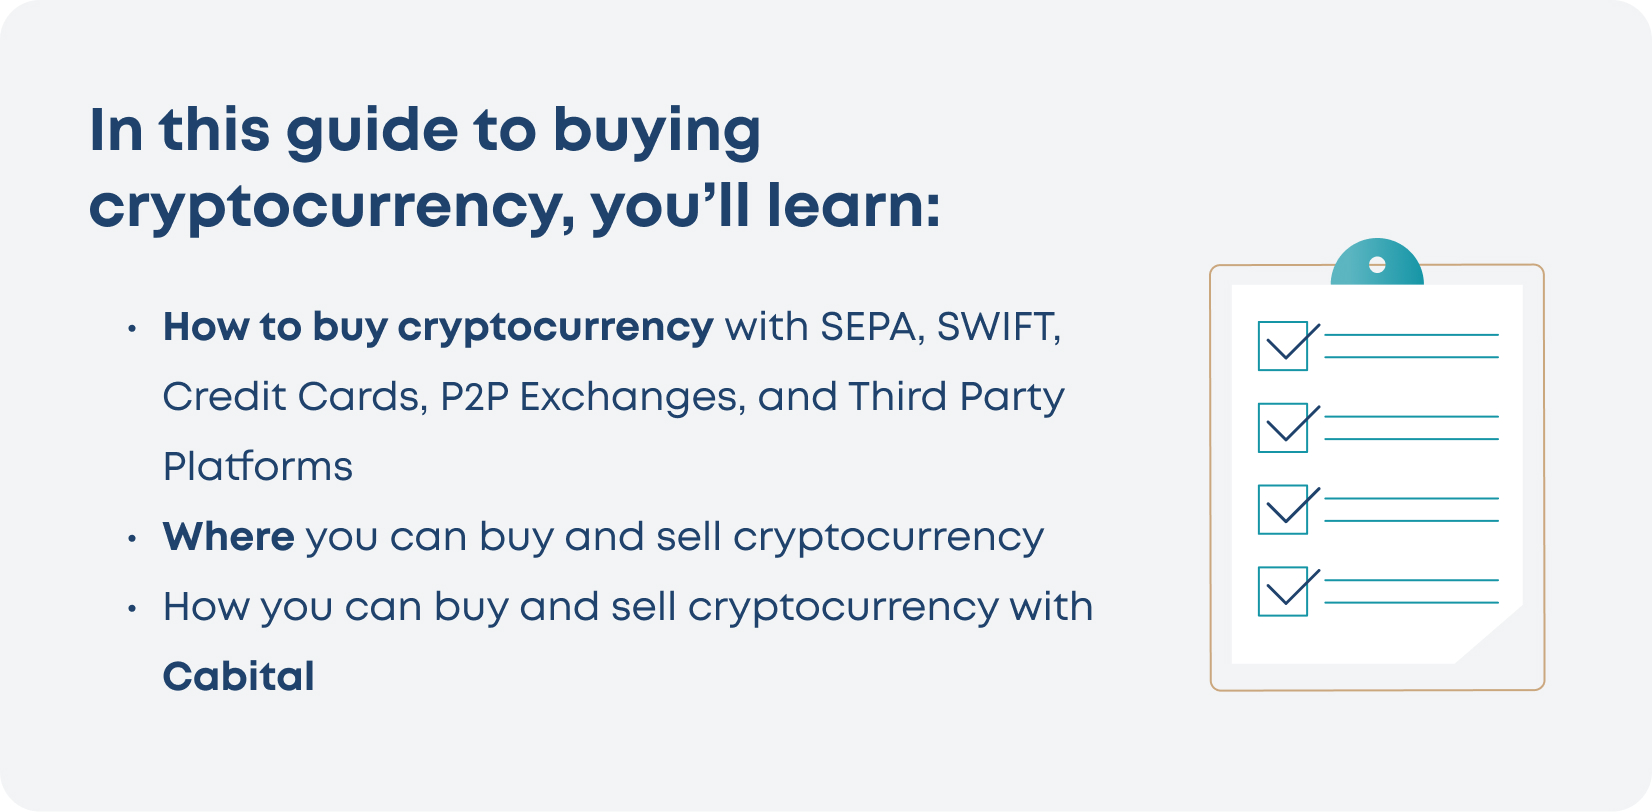 Summary of key points about buying crypto